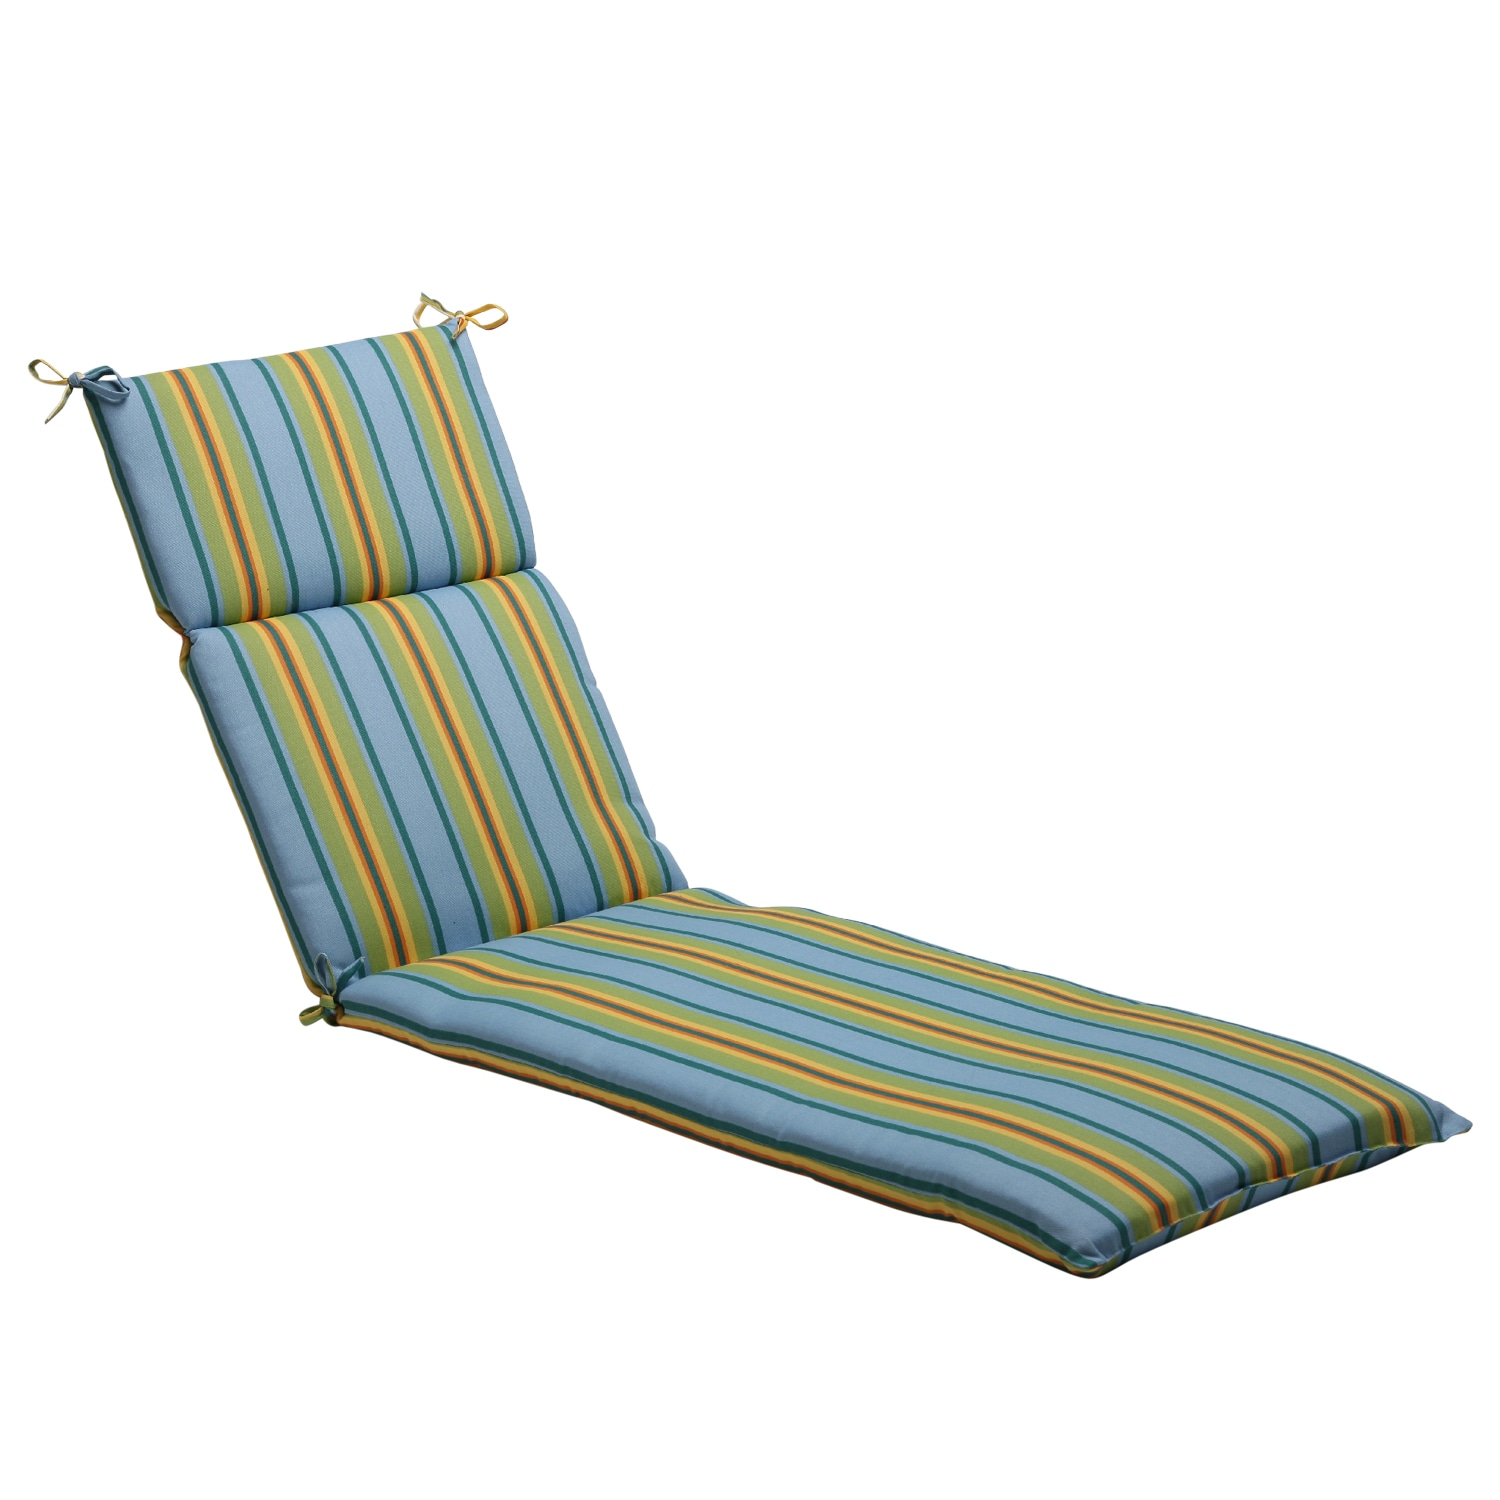 Pillow perfect blue green striped outdoor chaise lounge for Blue and white striped chaise lounge cushions